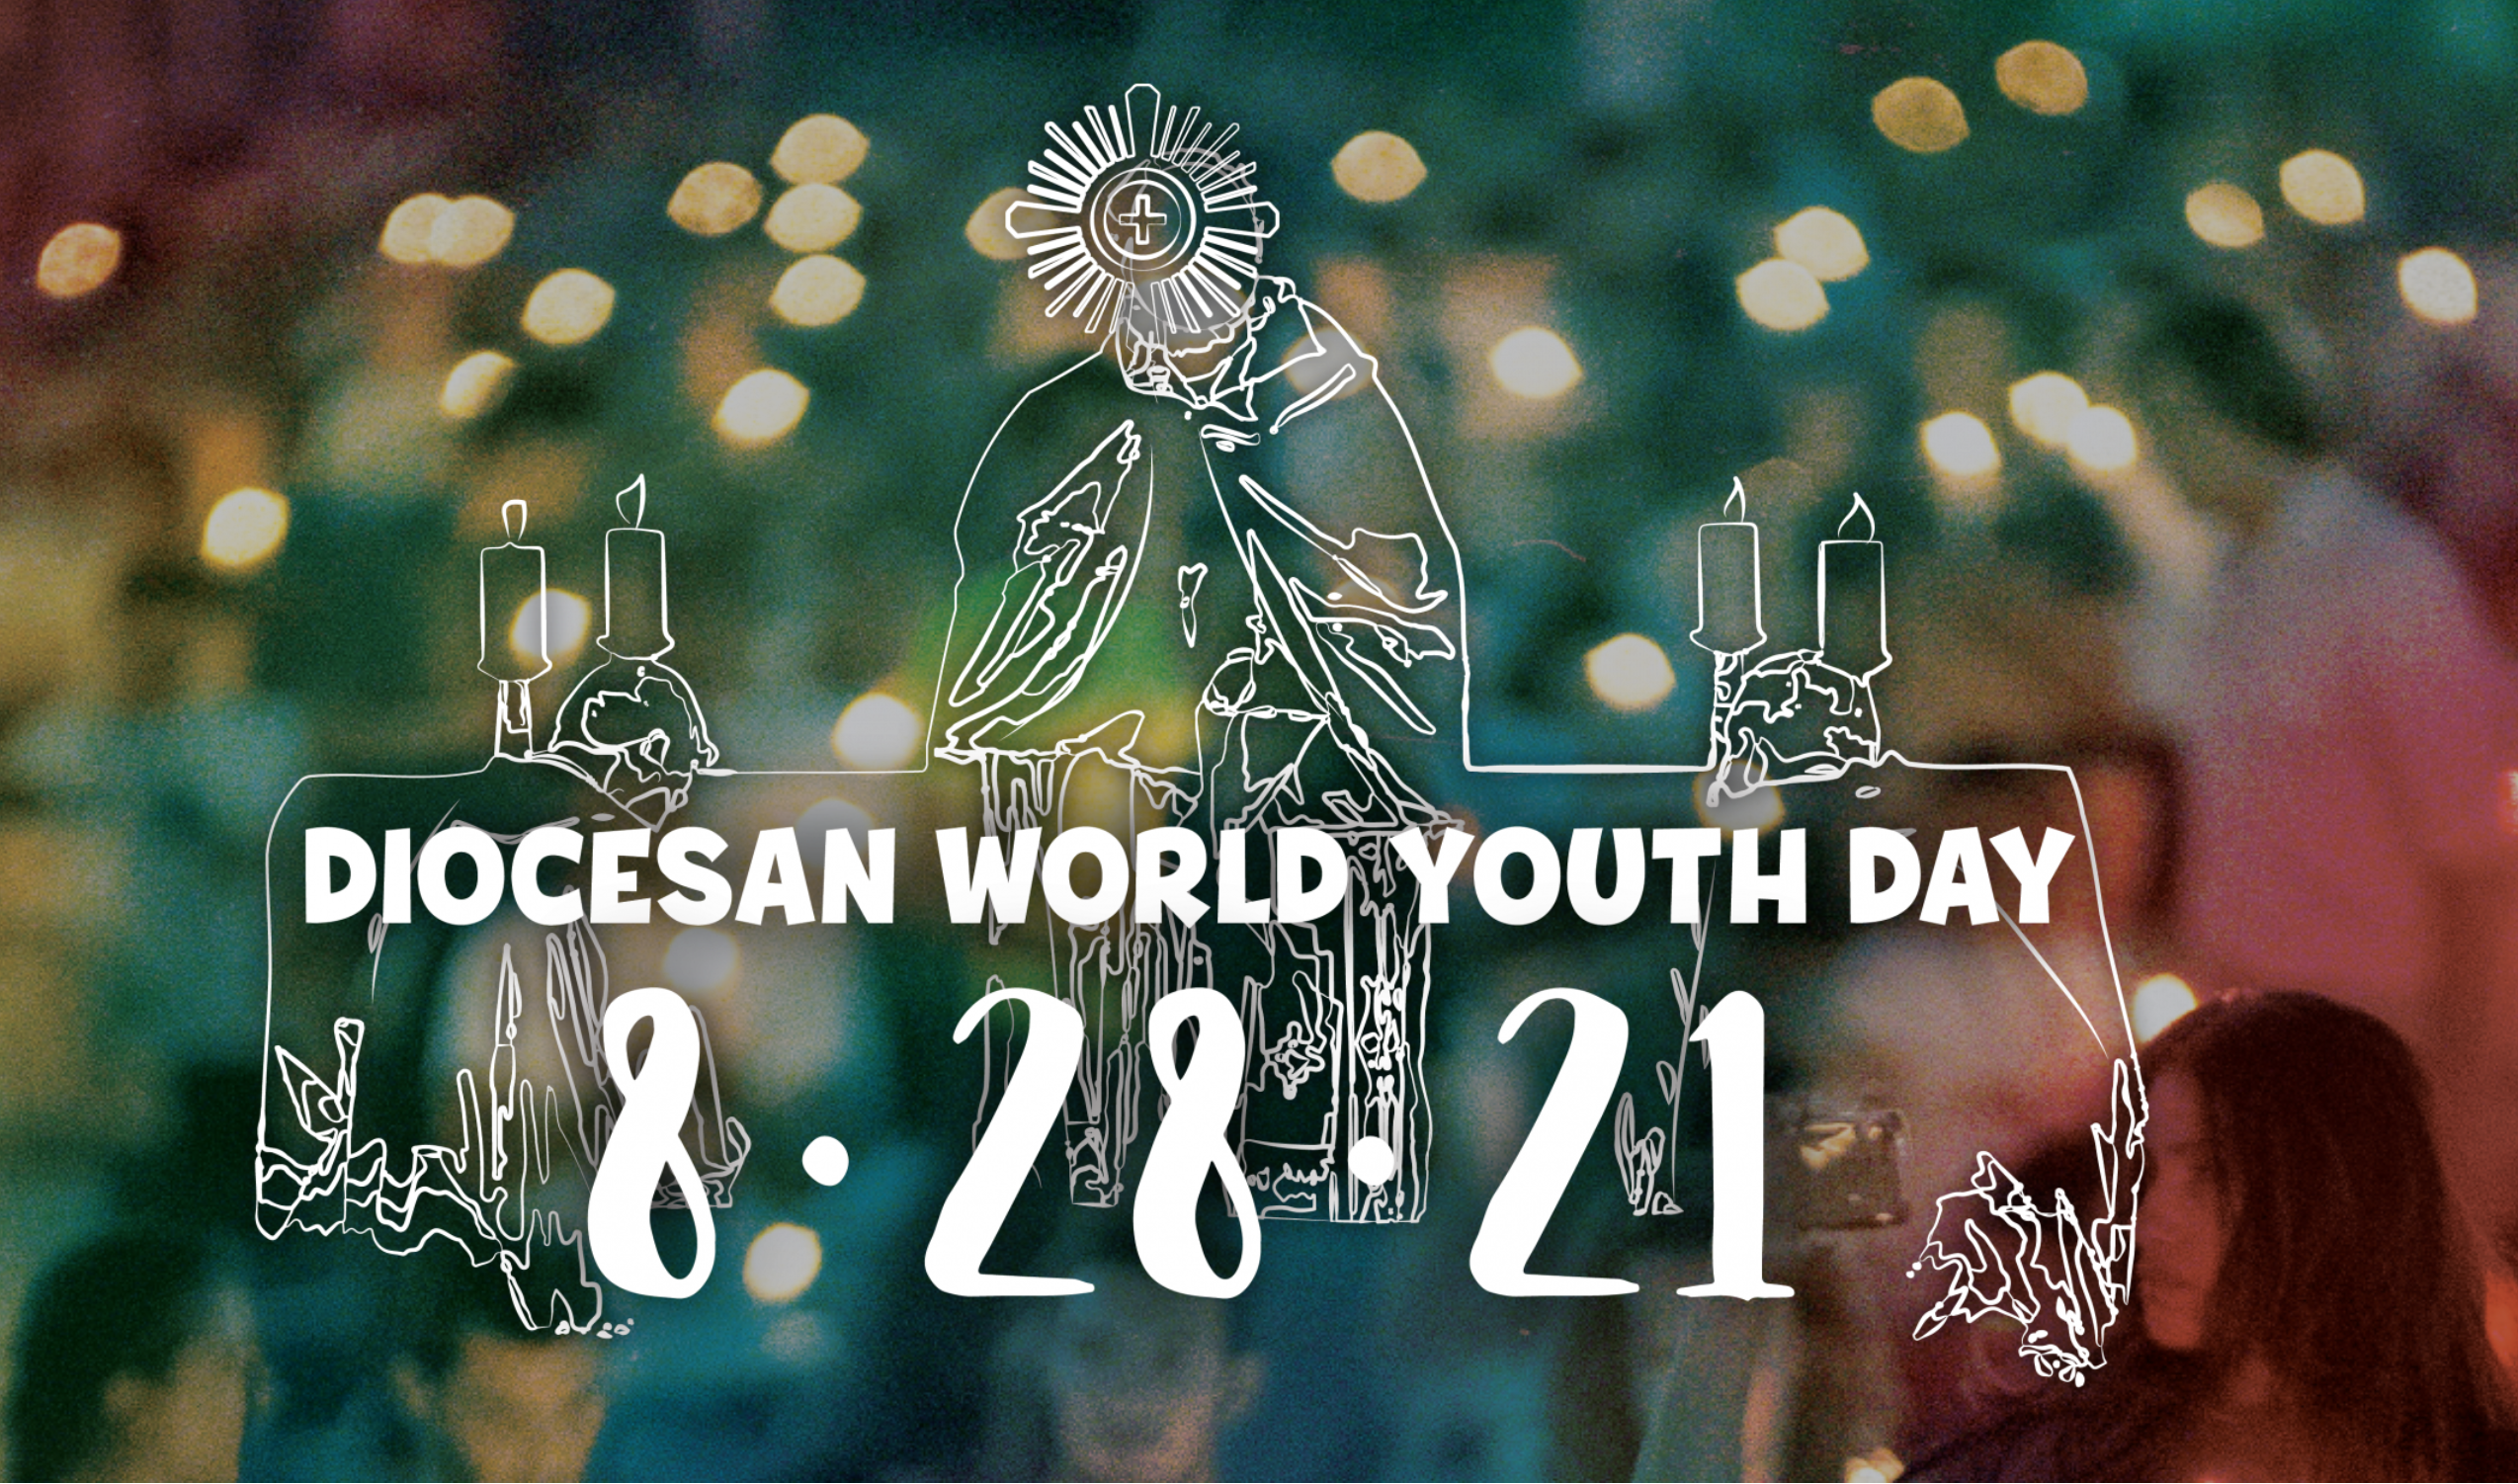 Diocesan World Youth Day